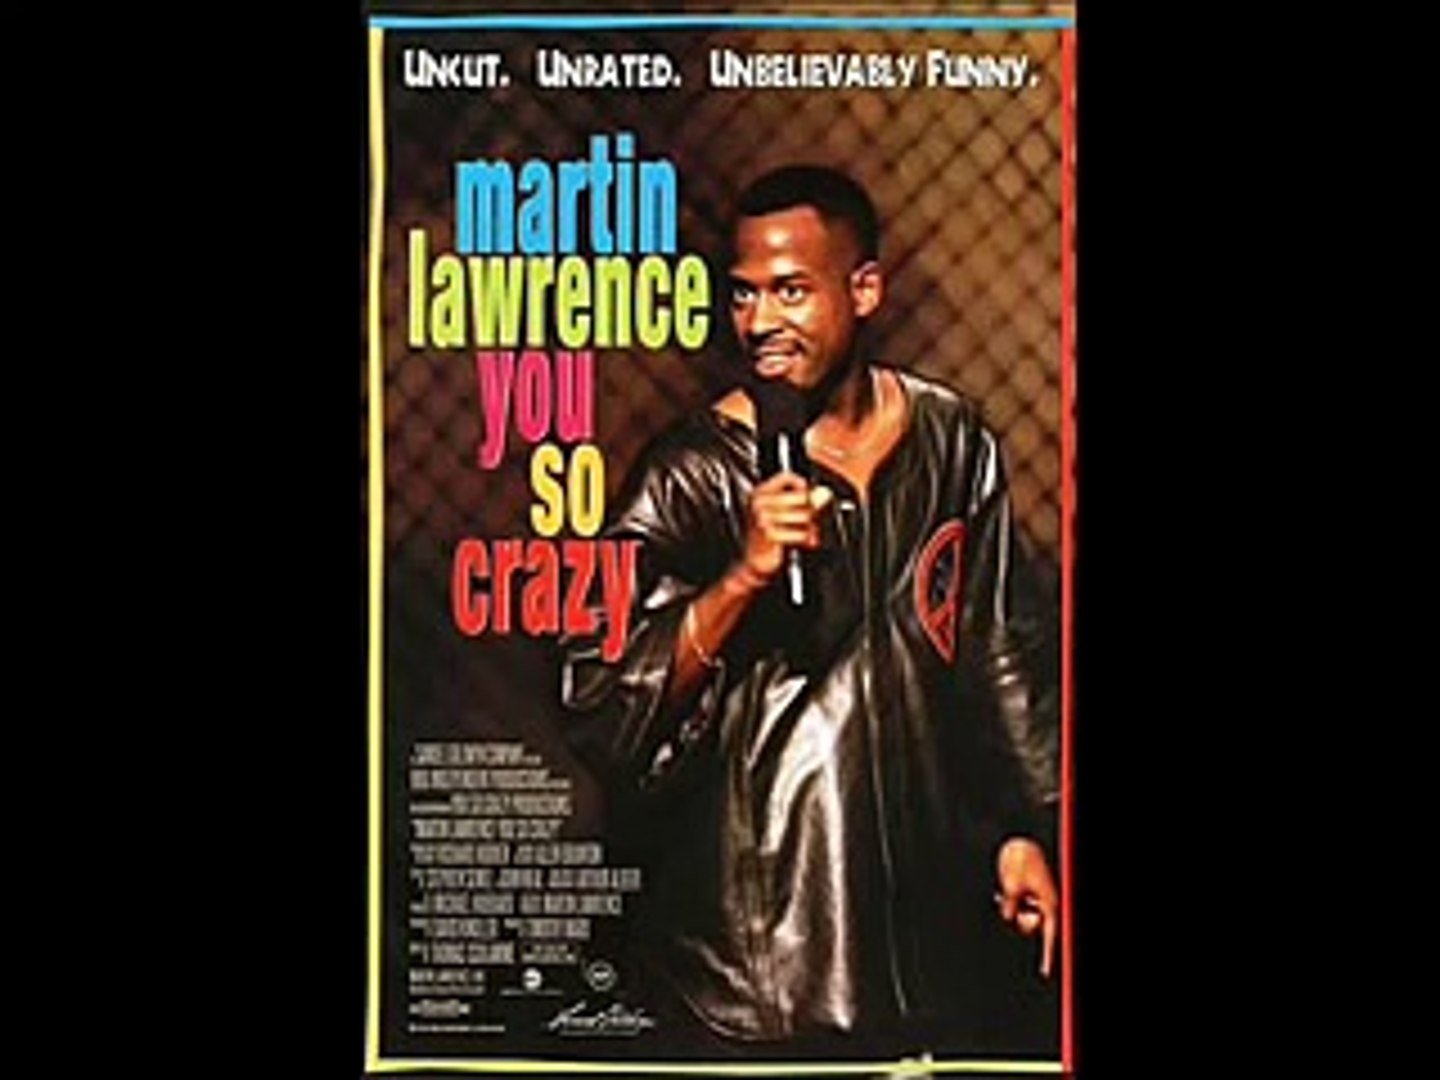 Martin Lawrence - Comedy stand up - Martin lawrence - HBO 1 night stand